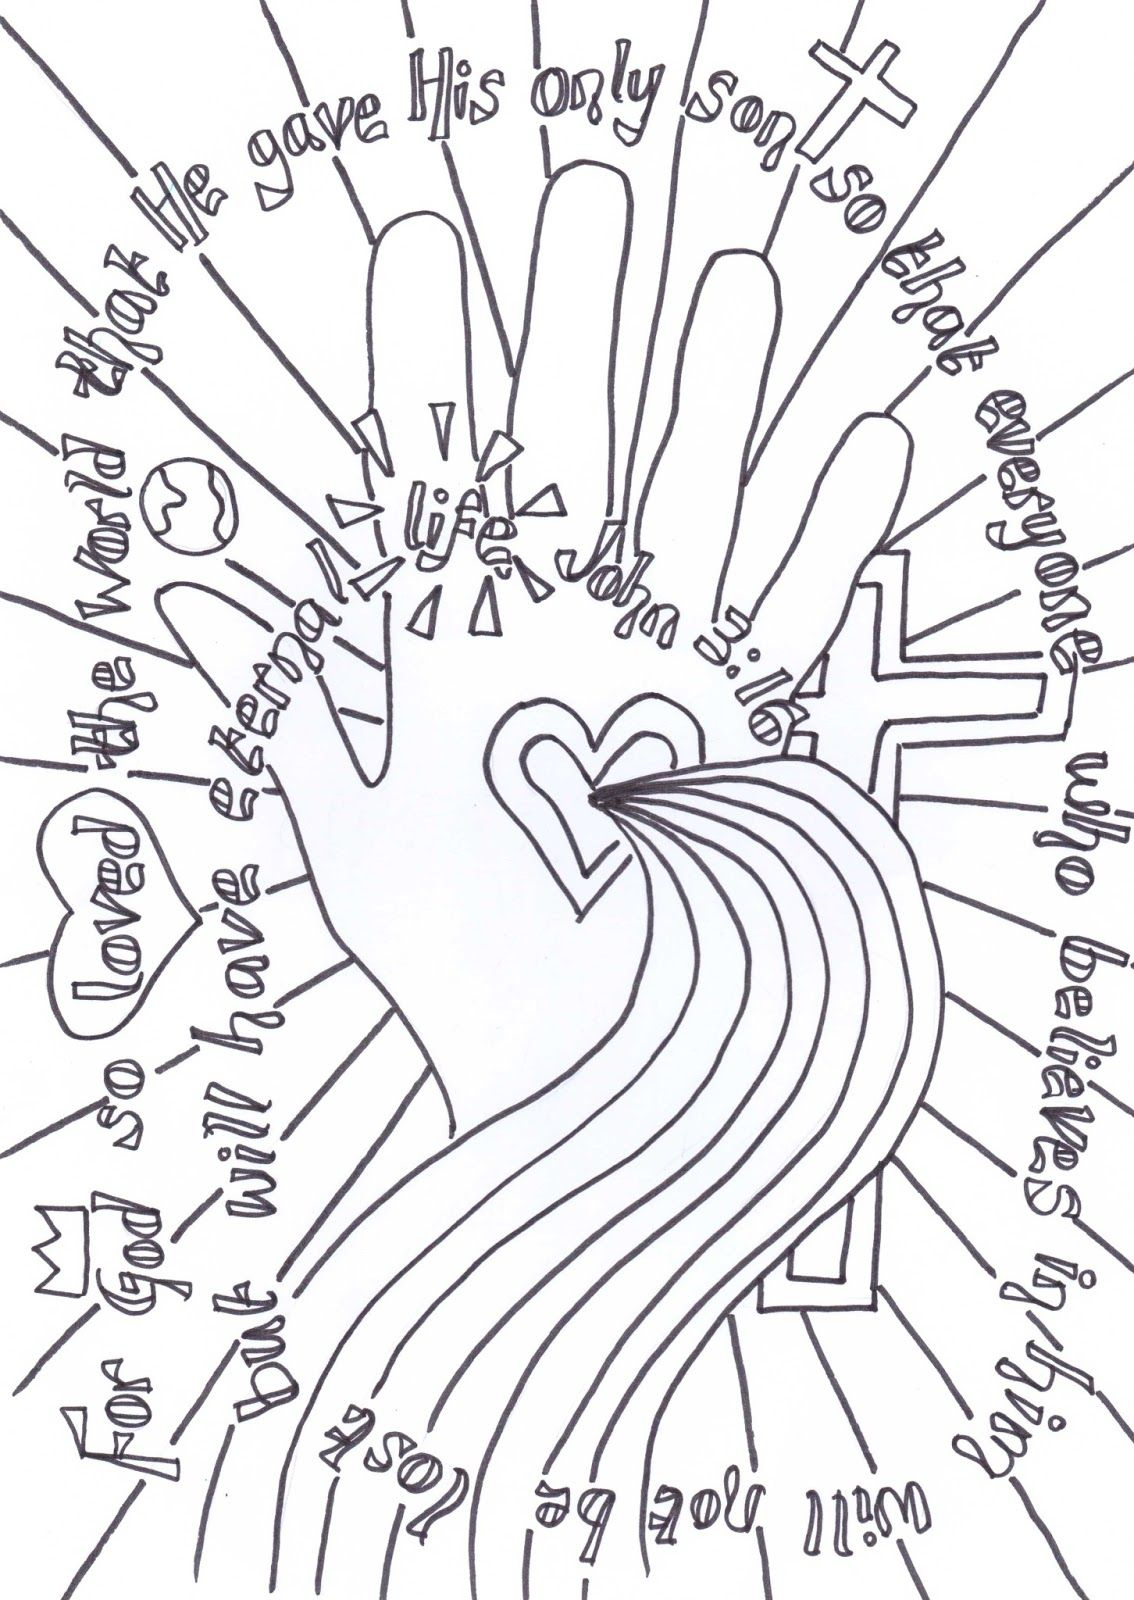 We Will Serve The Lord Coloring Page Coloring Pages Are A Great